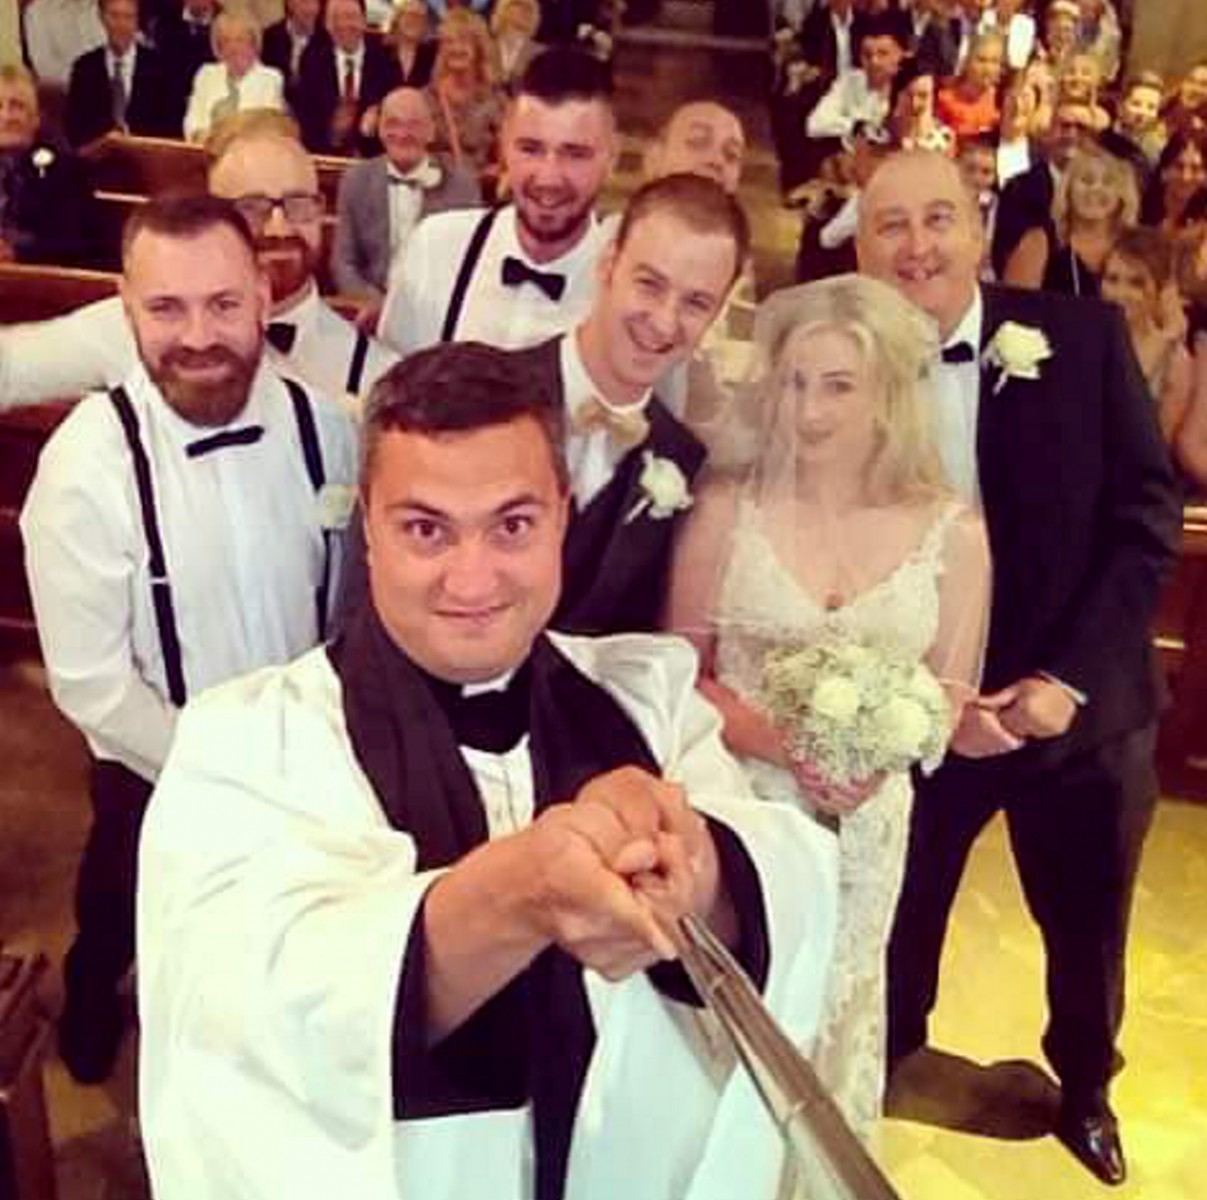 Vicar stuns bride at the alter by pulling out his SELFIE STICK!